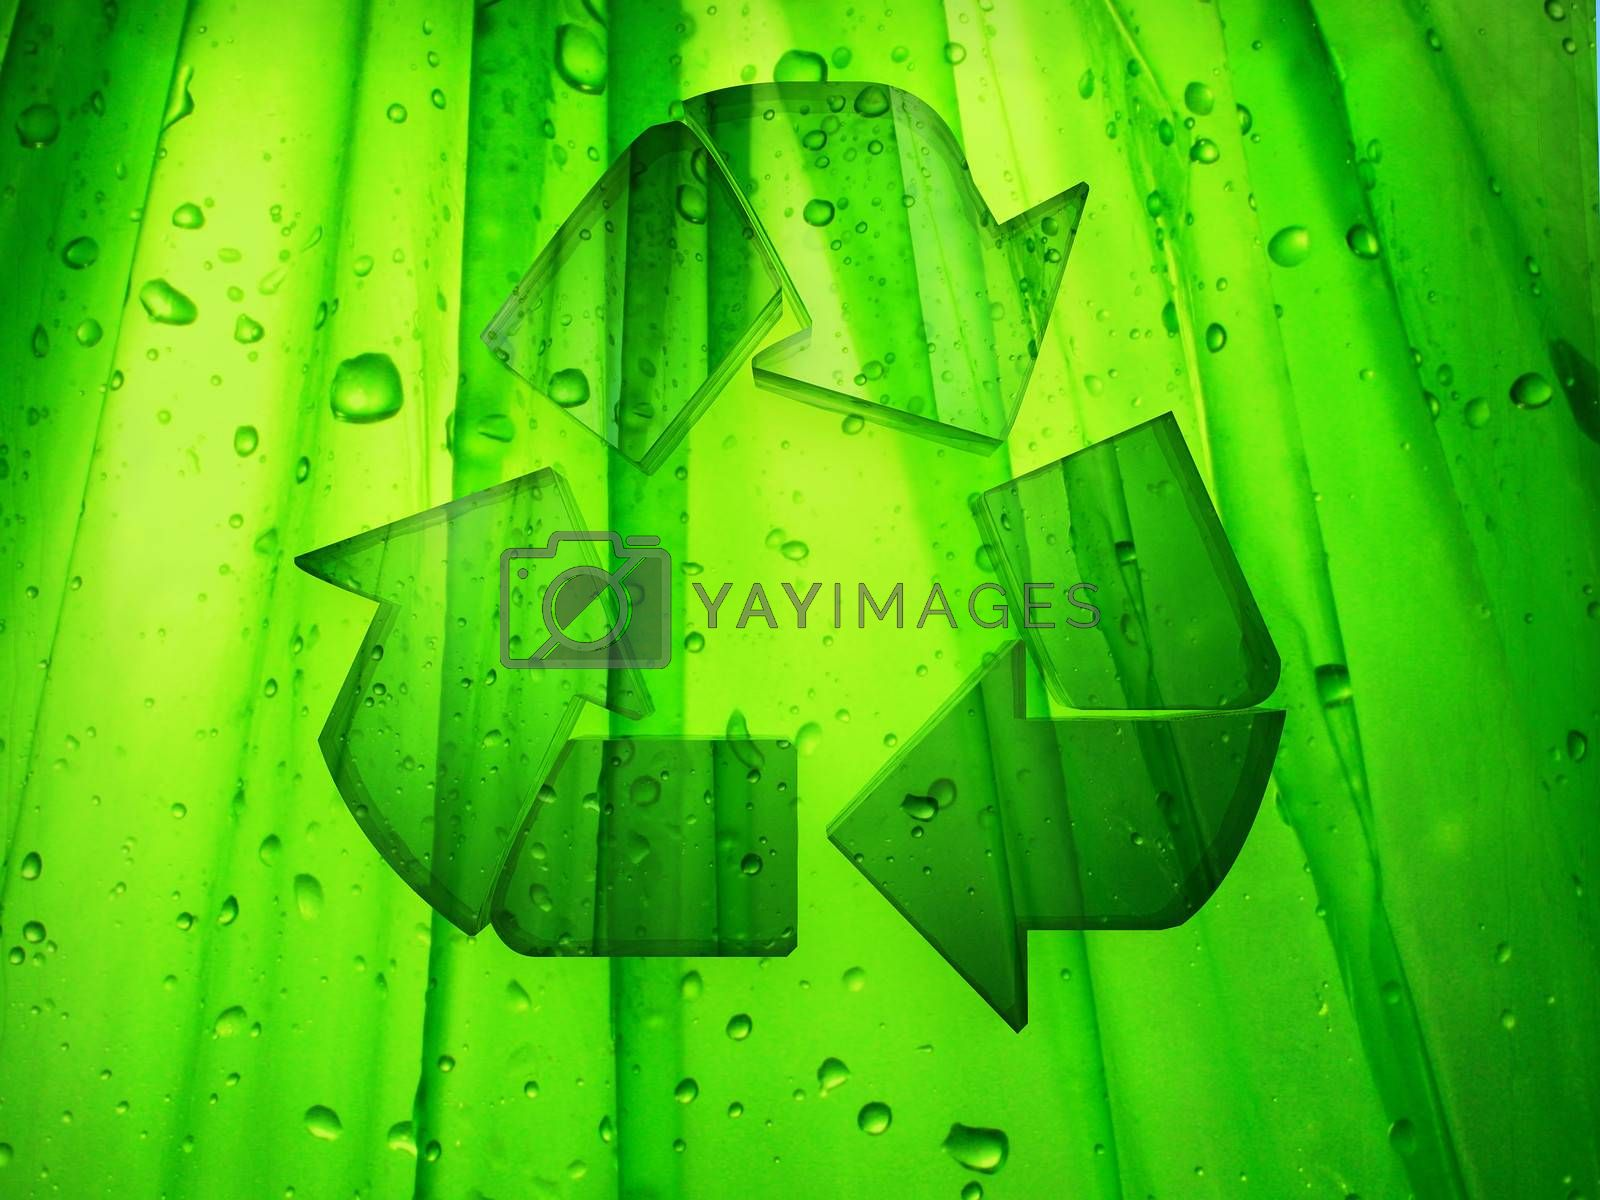 illustration of recycling